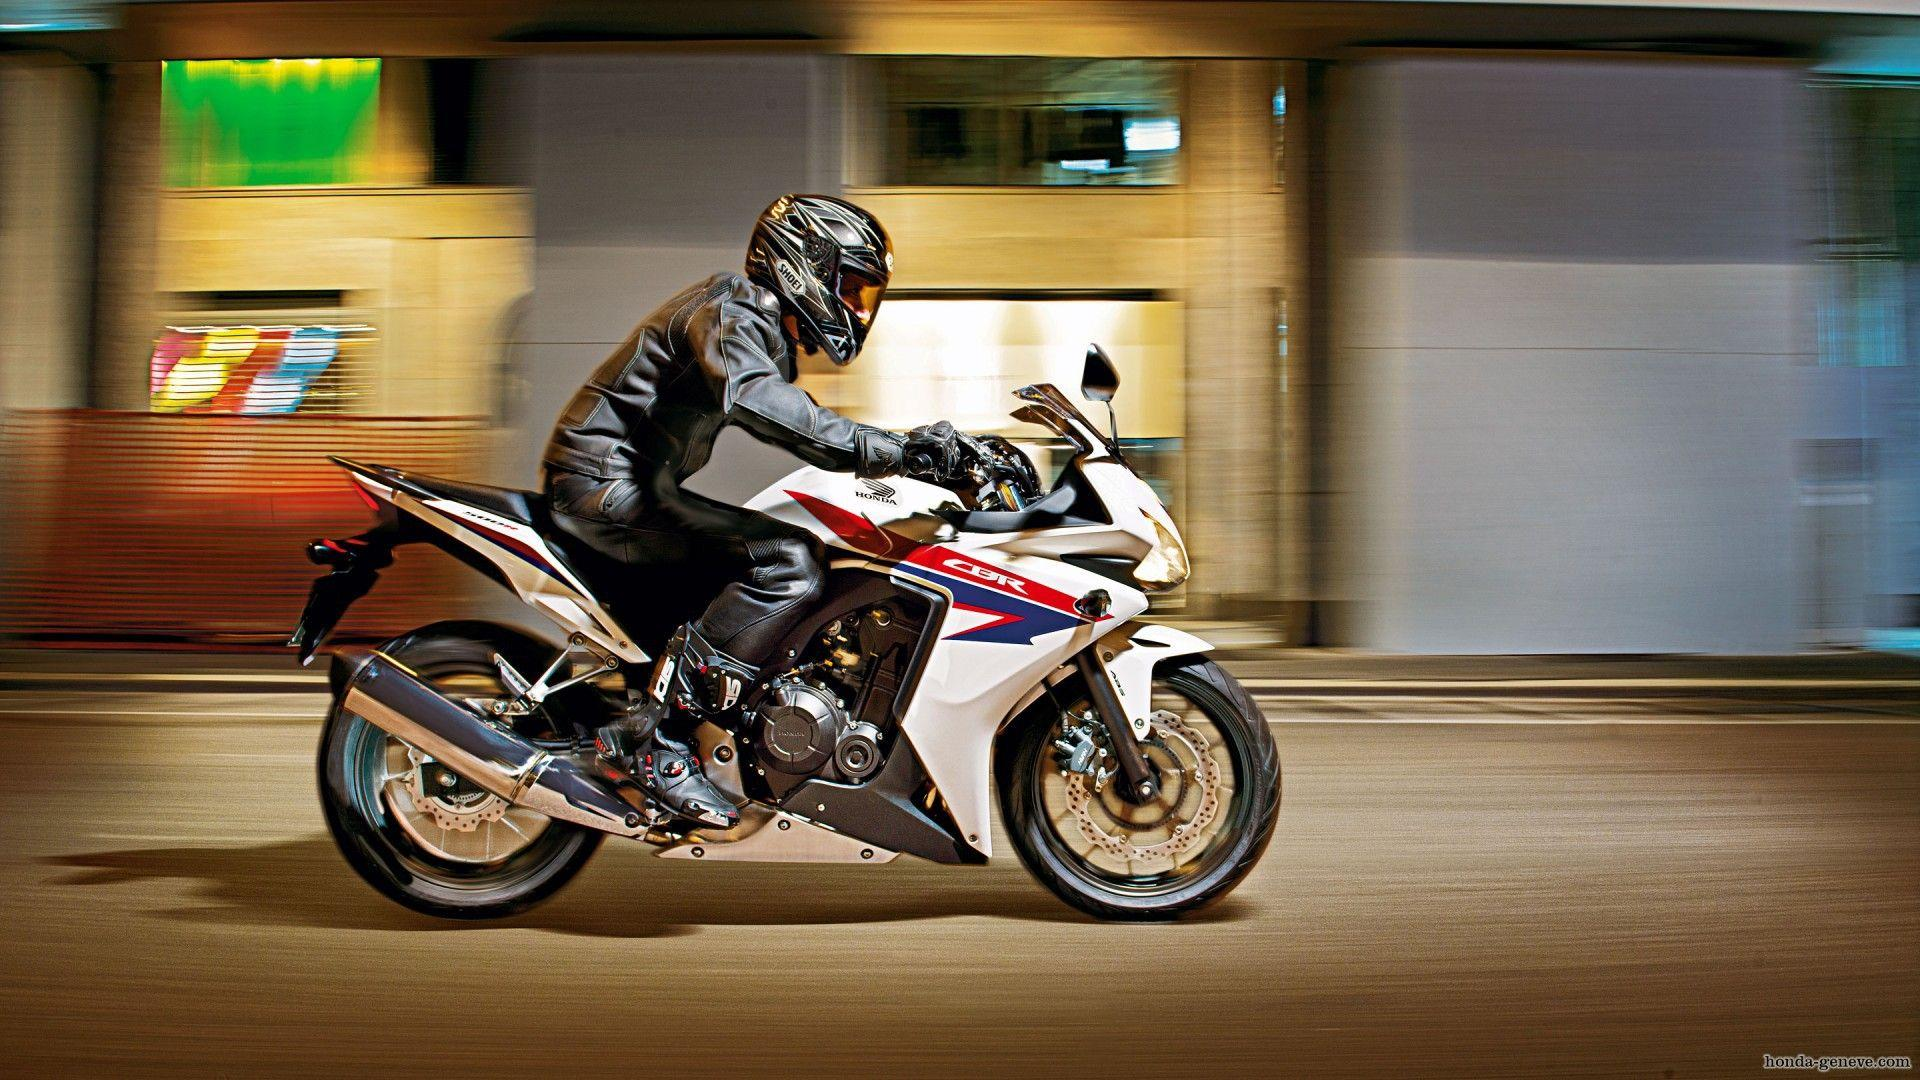 Beautiful bike Honda CBR 500 R wallpapers and images - wallpapers ...